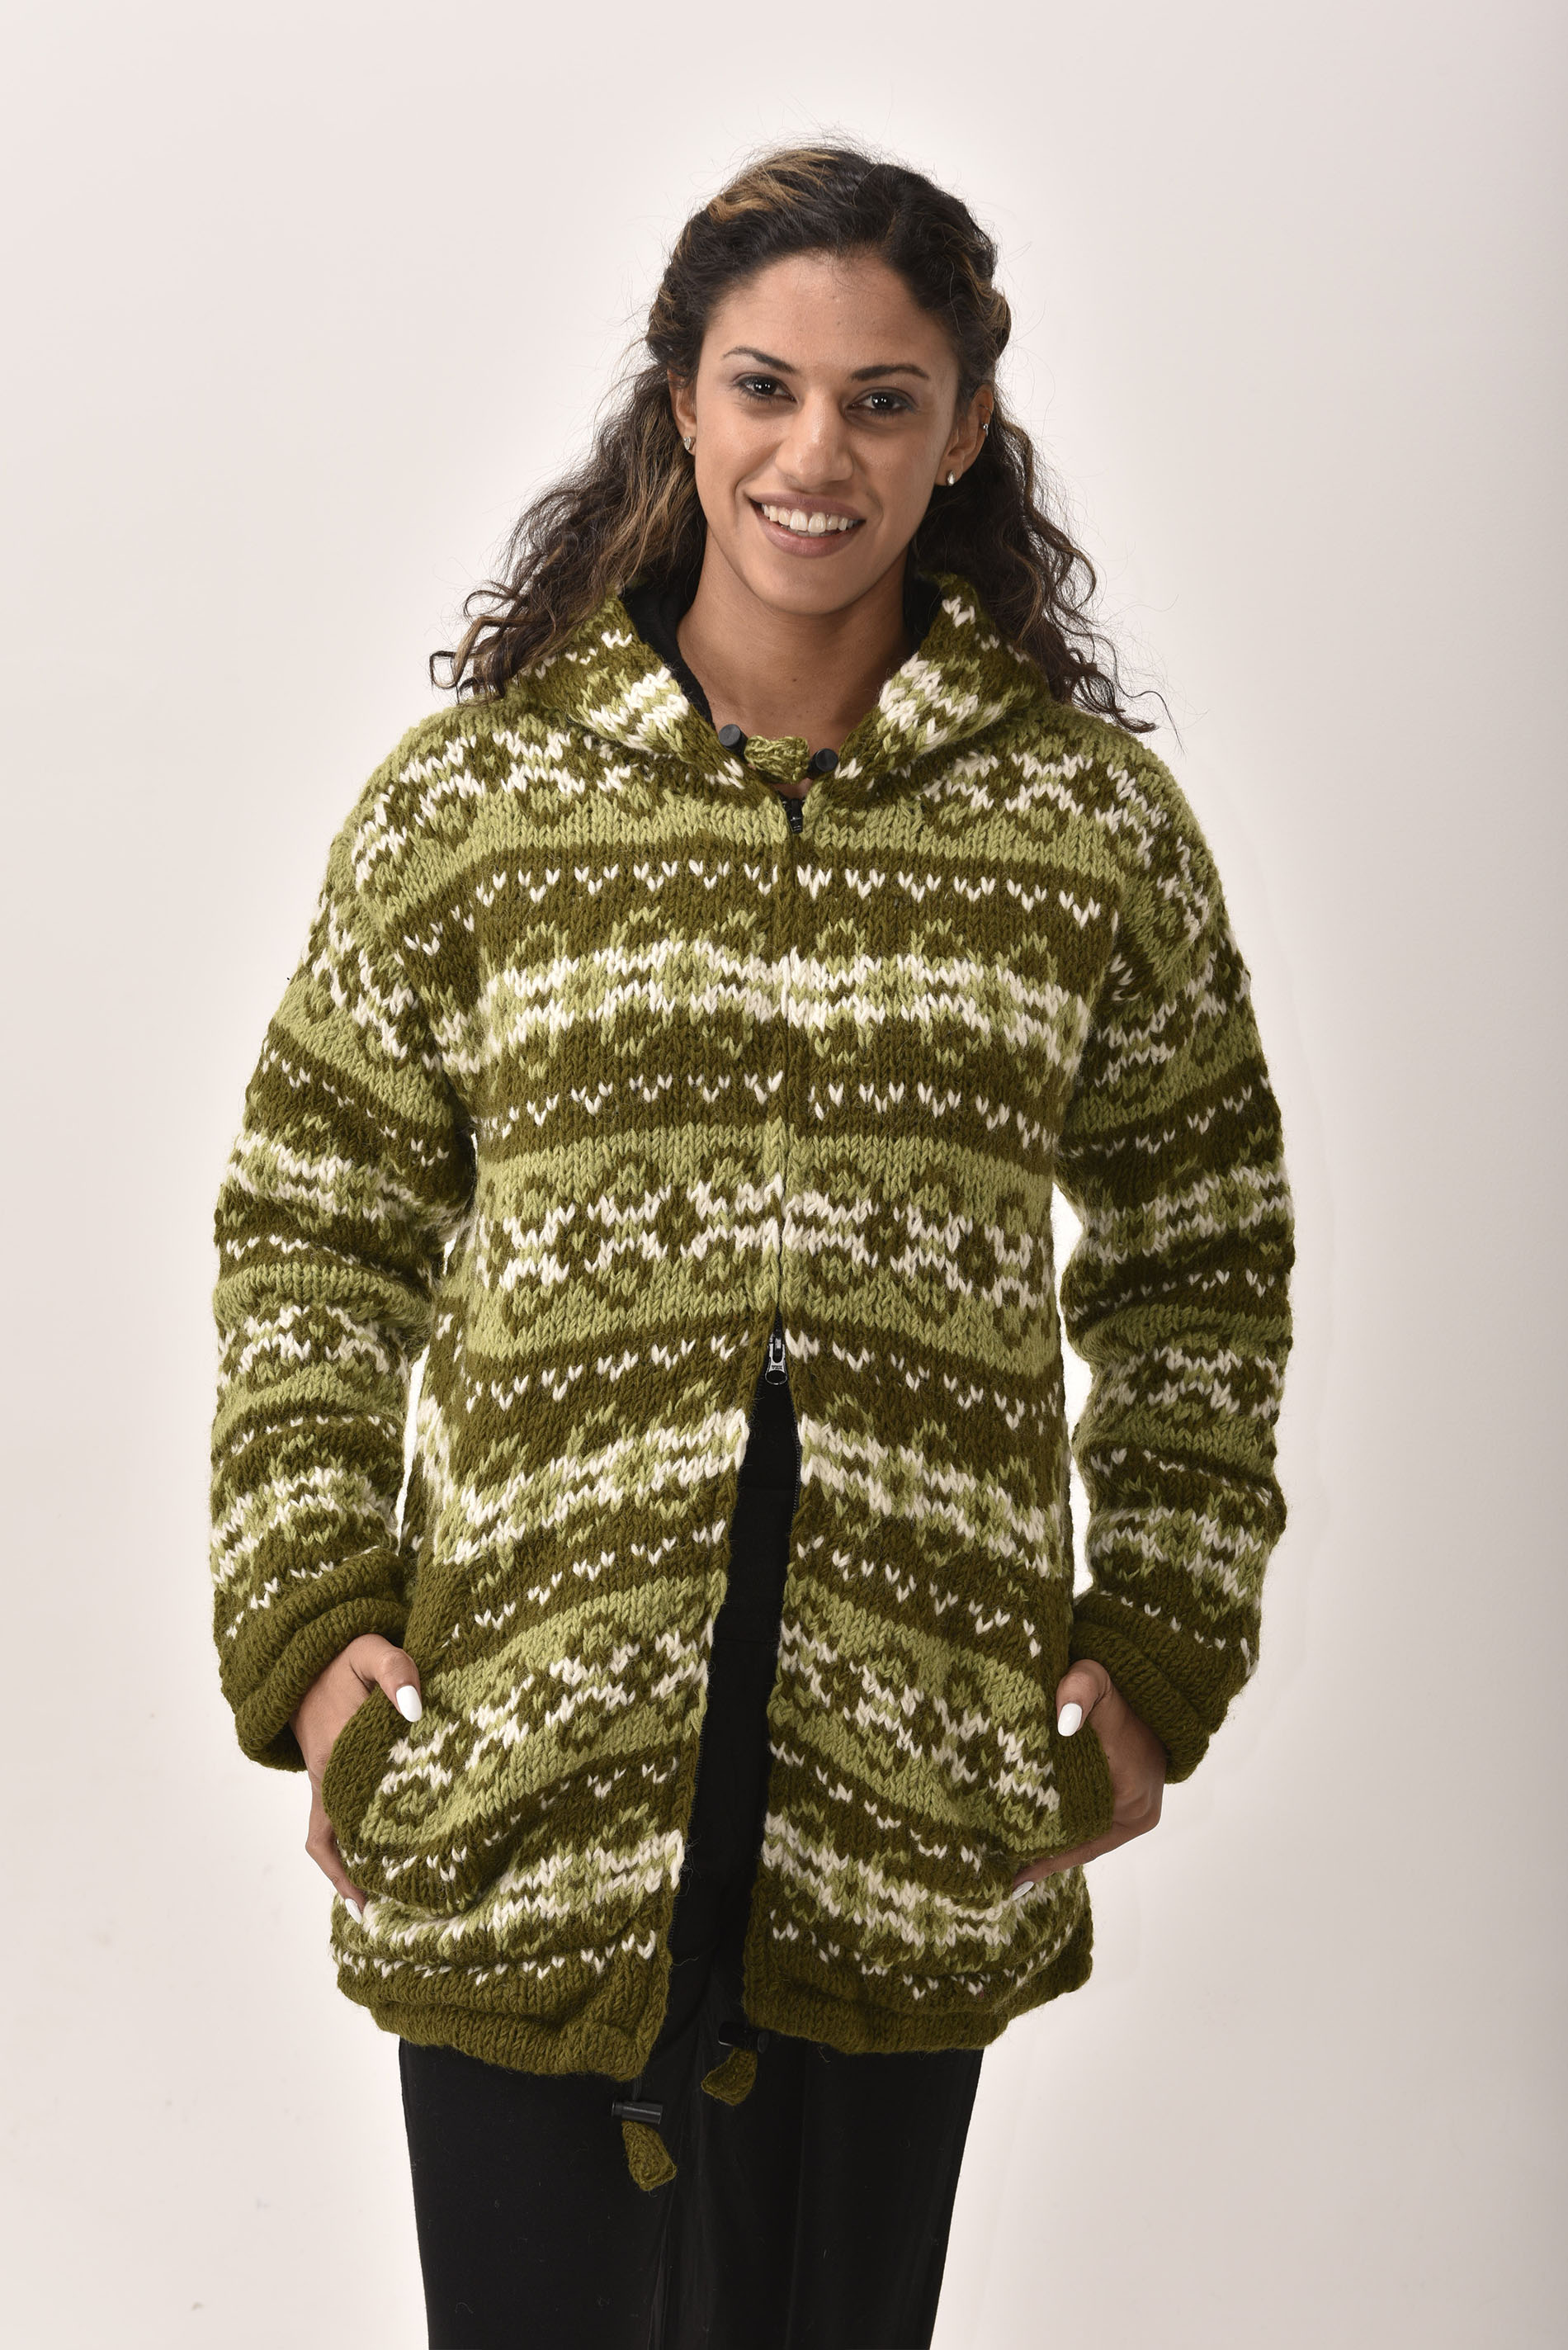 Himalayan Mountain Jacket Long Length Vintage Pattern, Green